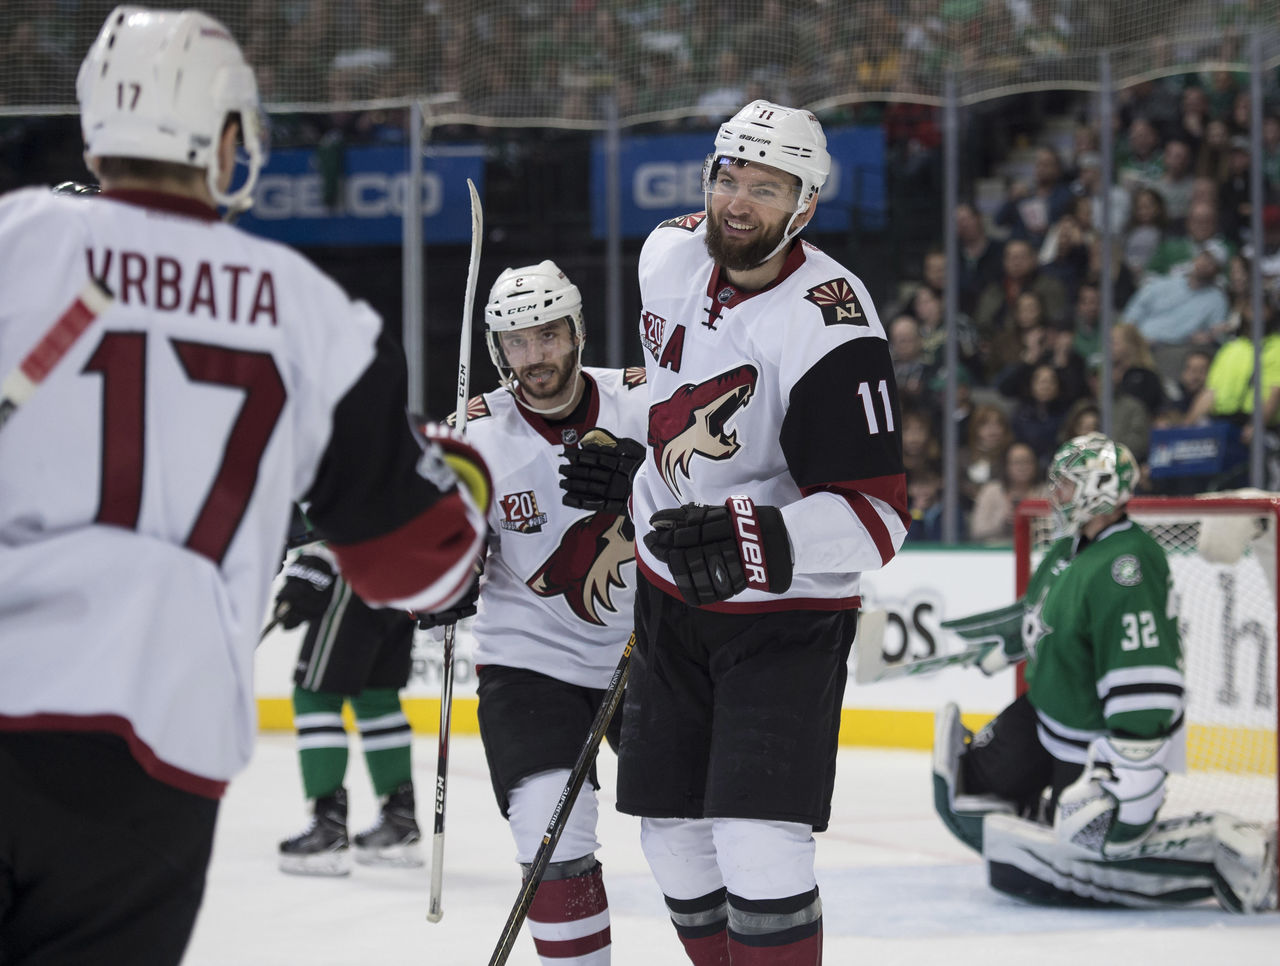 Cropped 2017 02 25t035739z 1595624901 nocid rtrmadp 3 nhl arizona coyotes at dallas stars  1